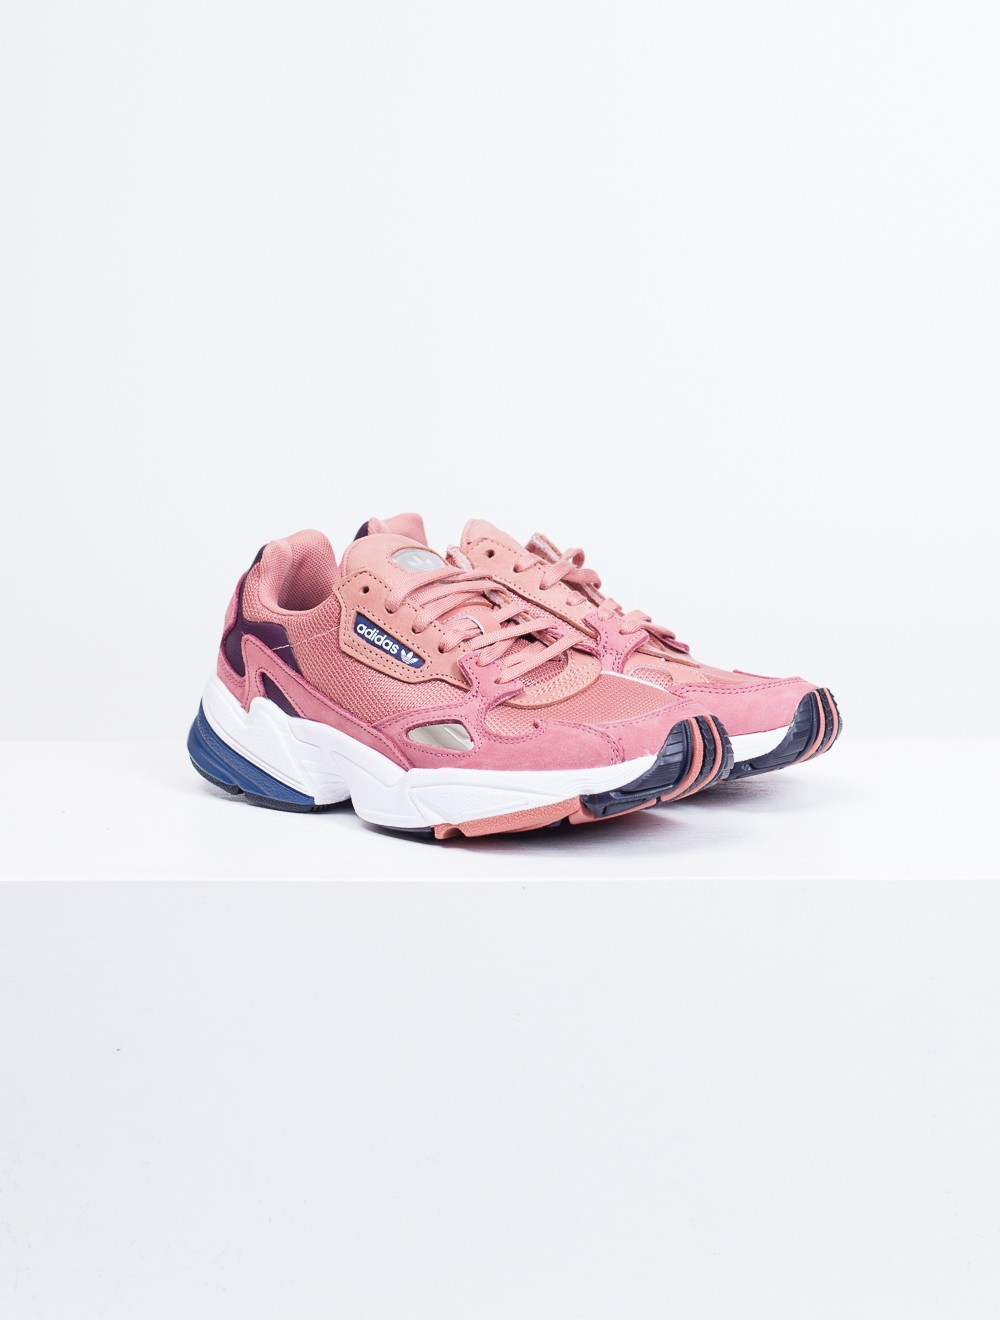 best sneakers a2419 17037 Adidas  Falcon W D96700 RAWPINDKBLUE - Sneakers